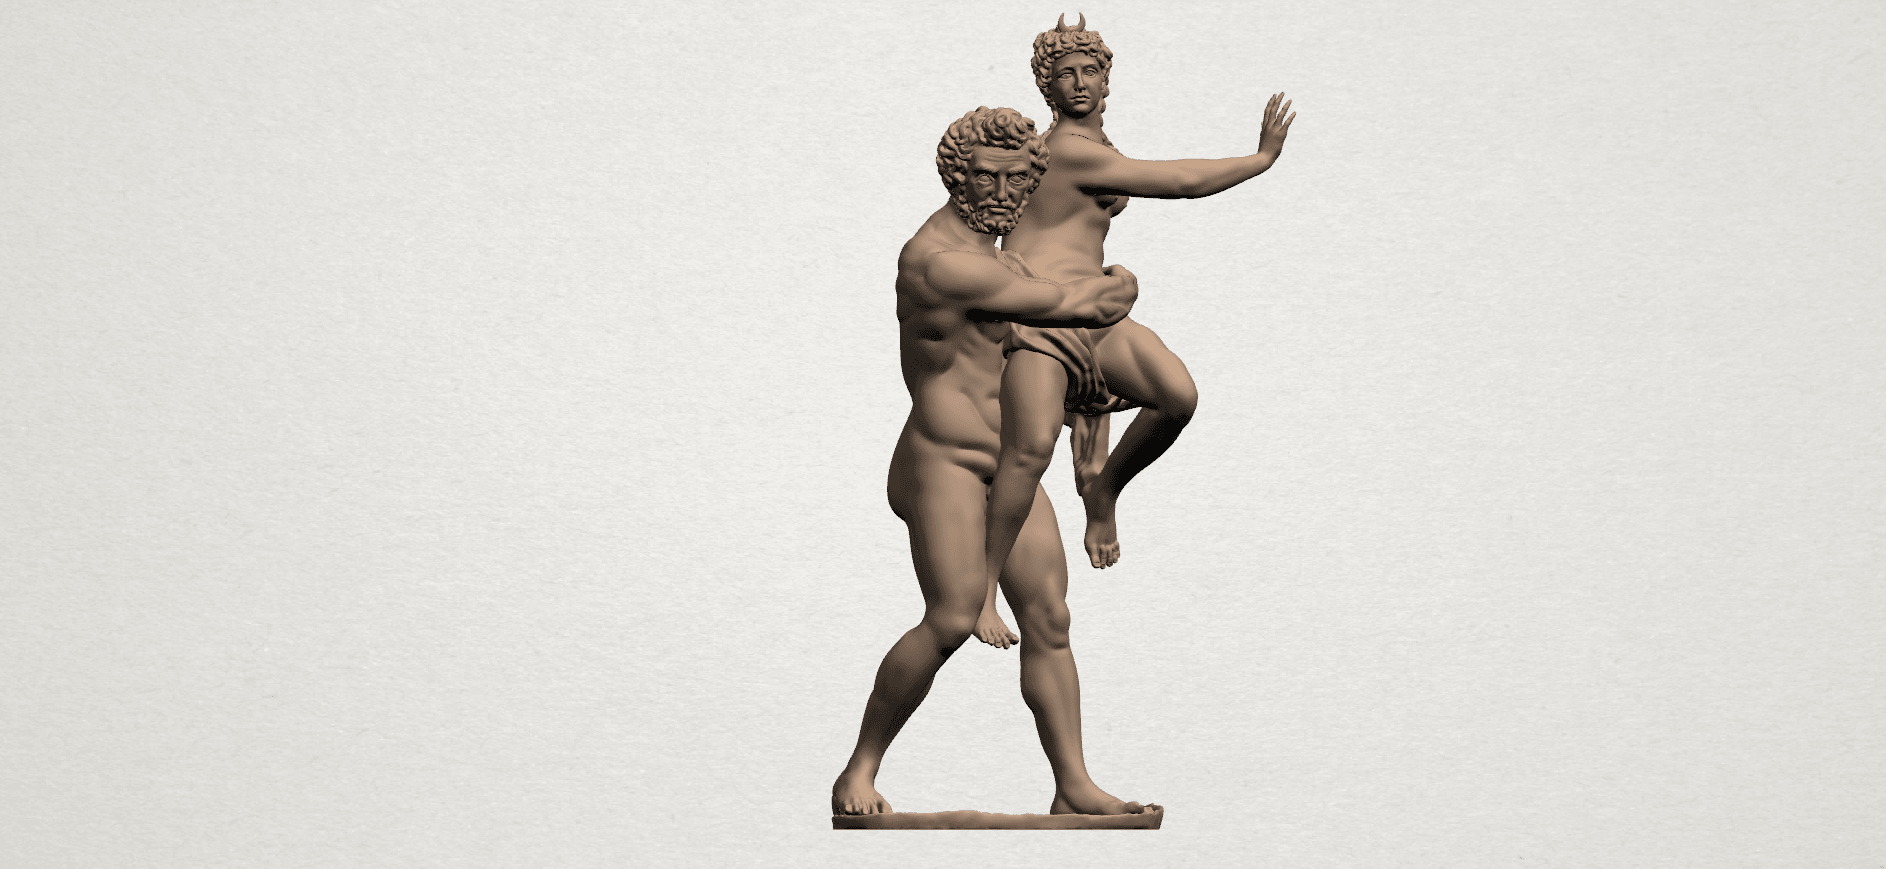 Naked Couple (iv) A07.png Download free STL file Naked Couple 04 • 3D printable model, GeorgesNikkei